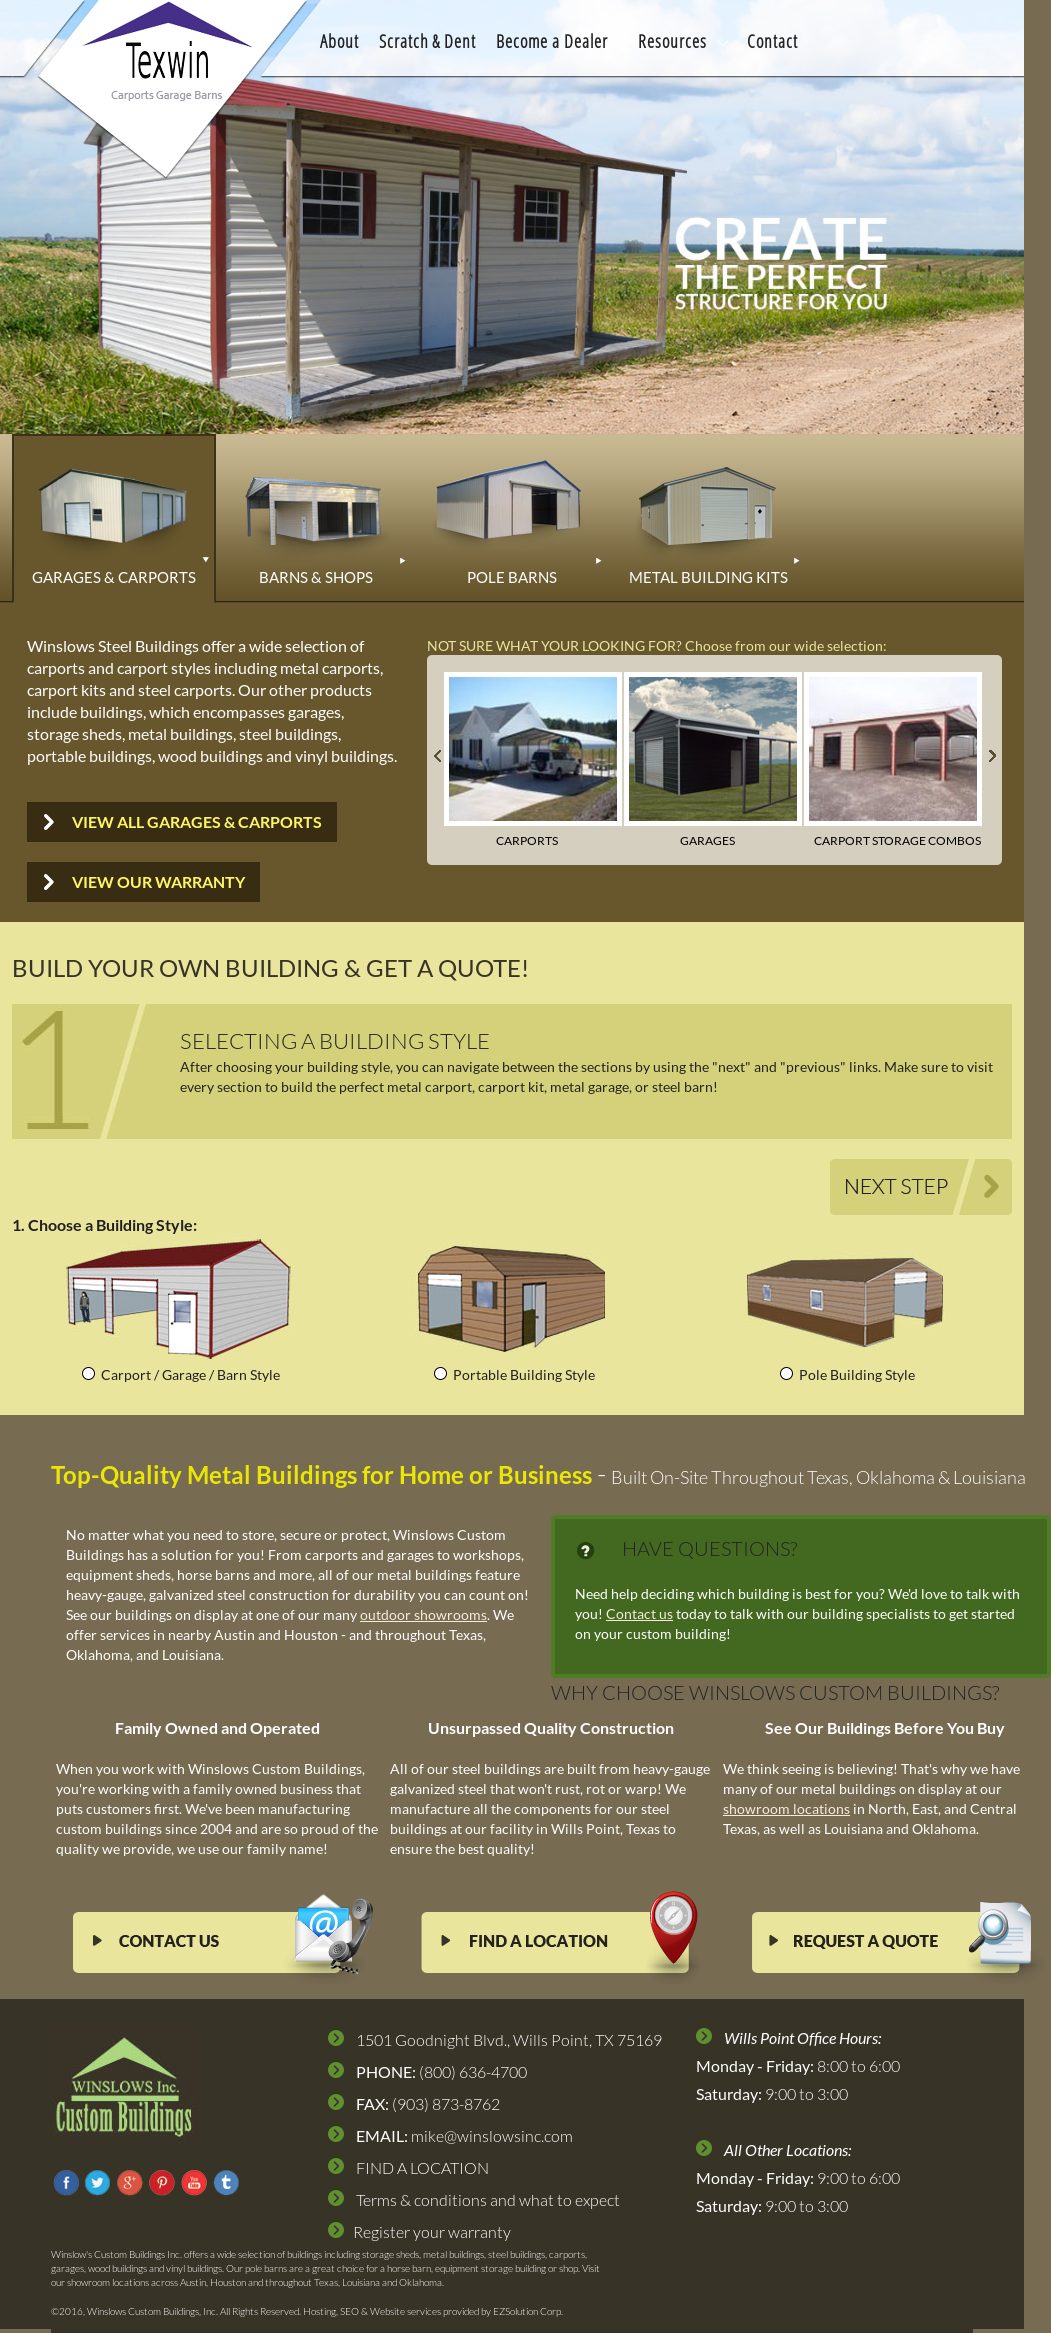 Texwin Custom Buildings Competitors, Revenue and Employees